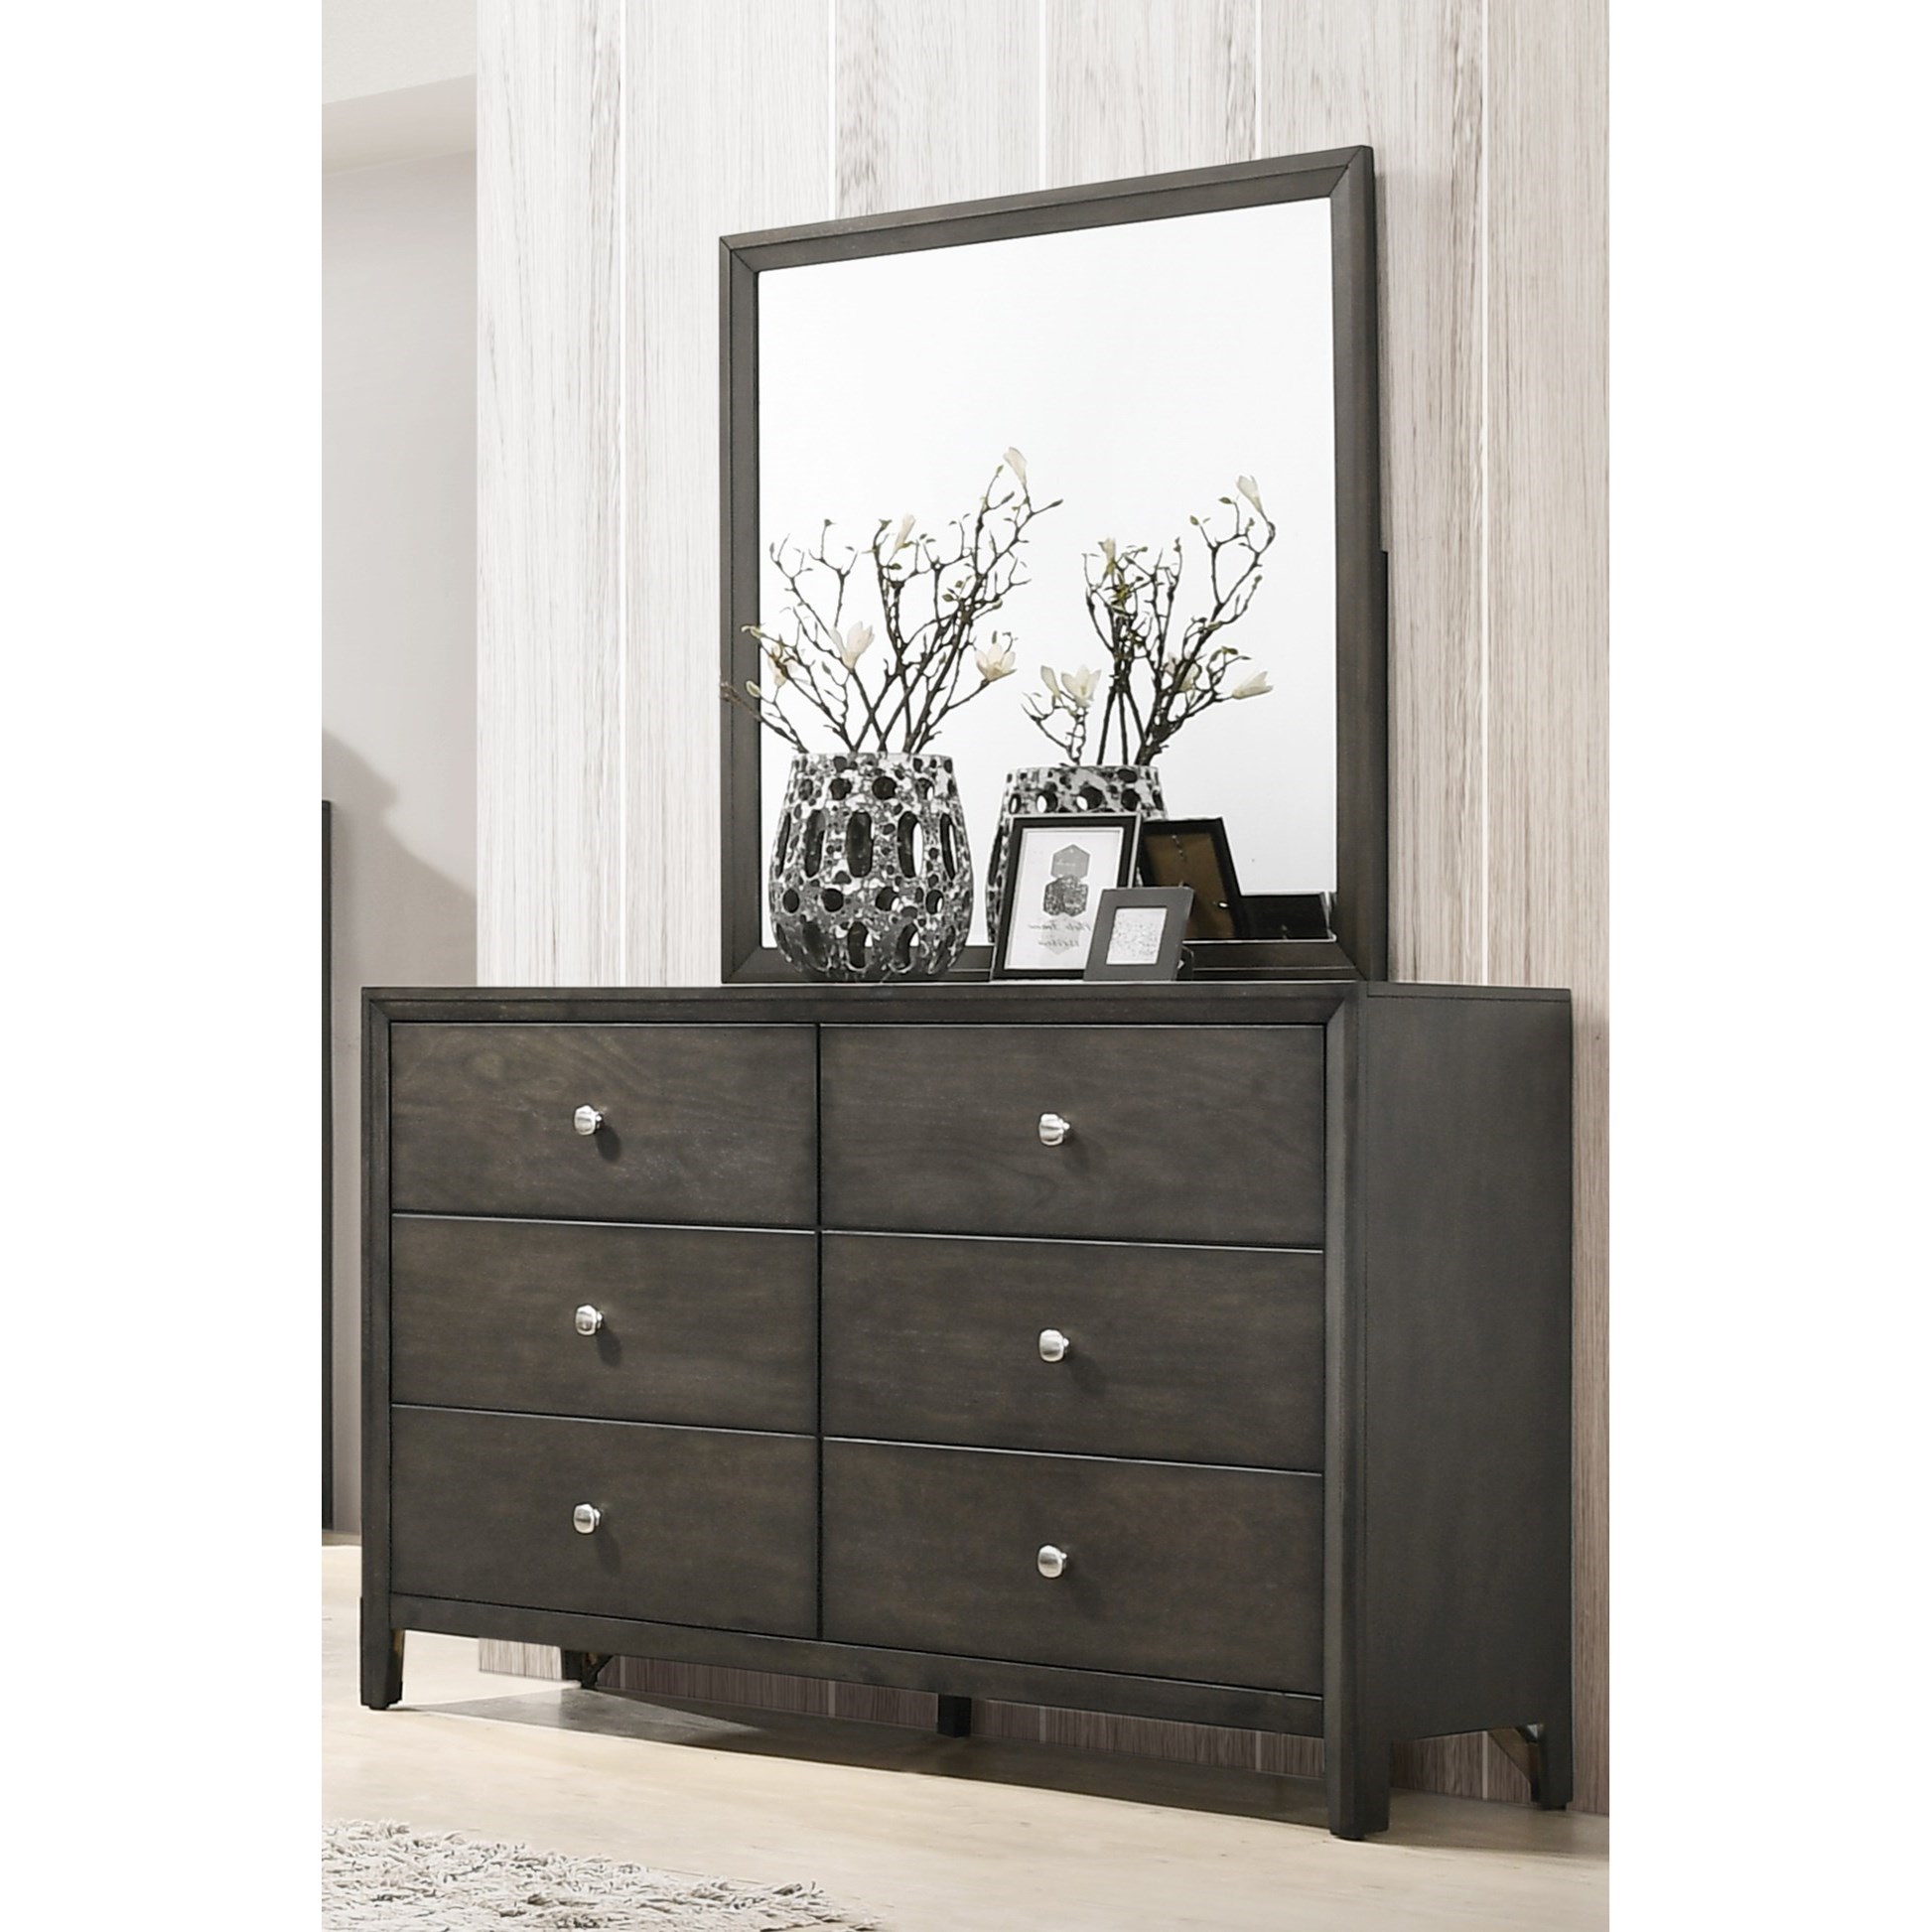 United Furniture Industries Grant 1060 20 Transitional